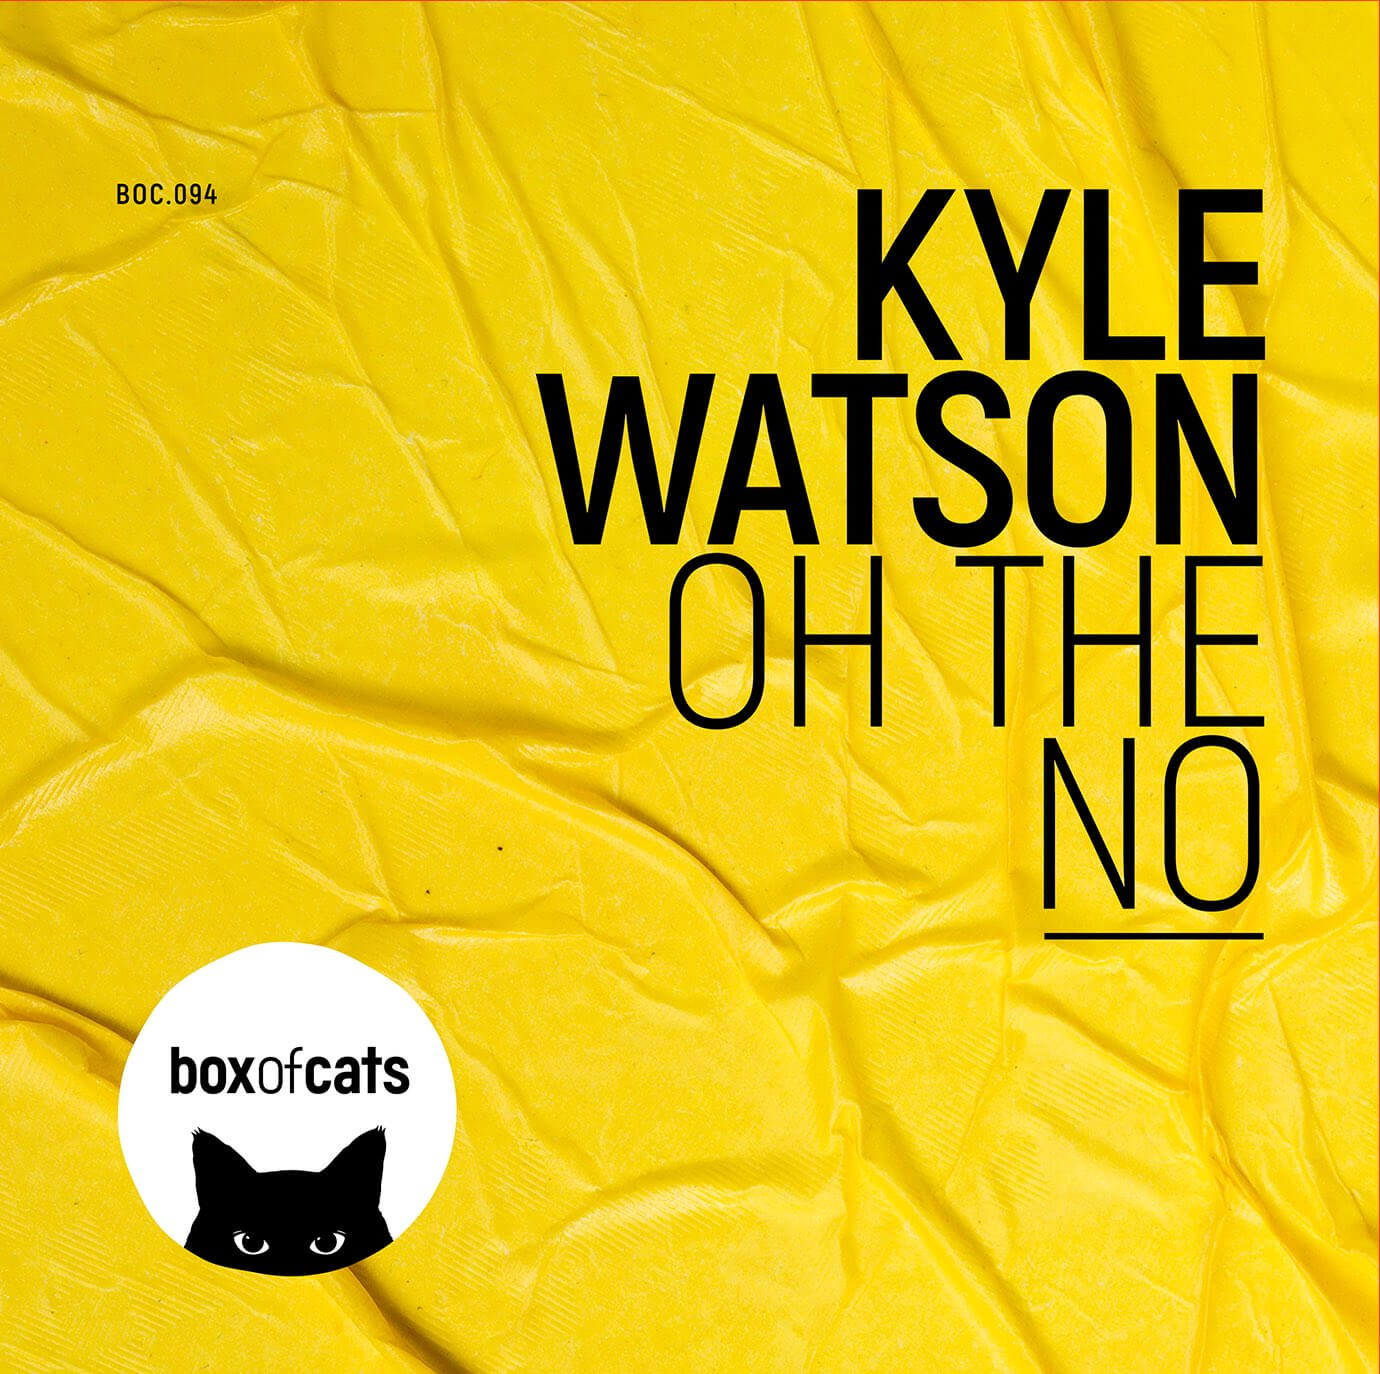 kyle watson oh the no electric hawk